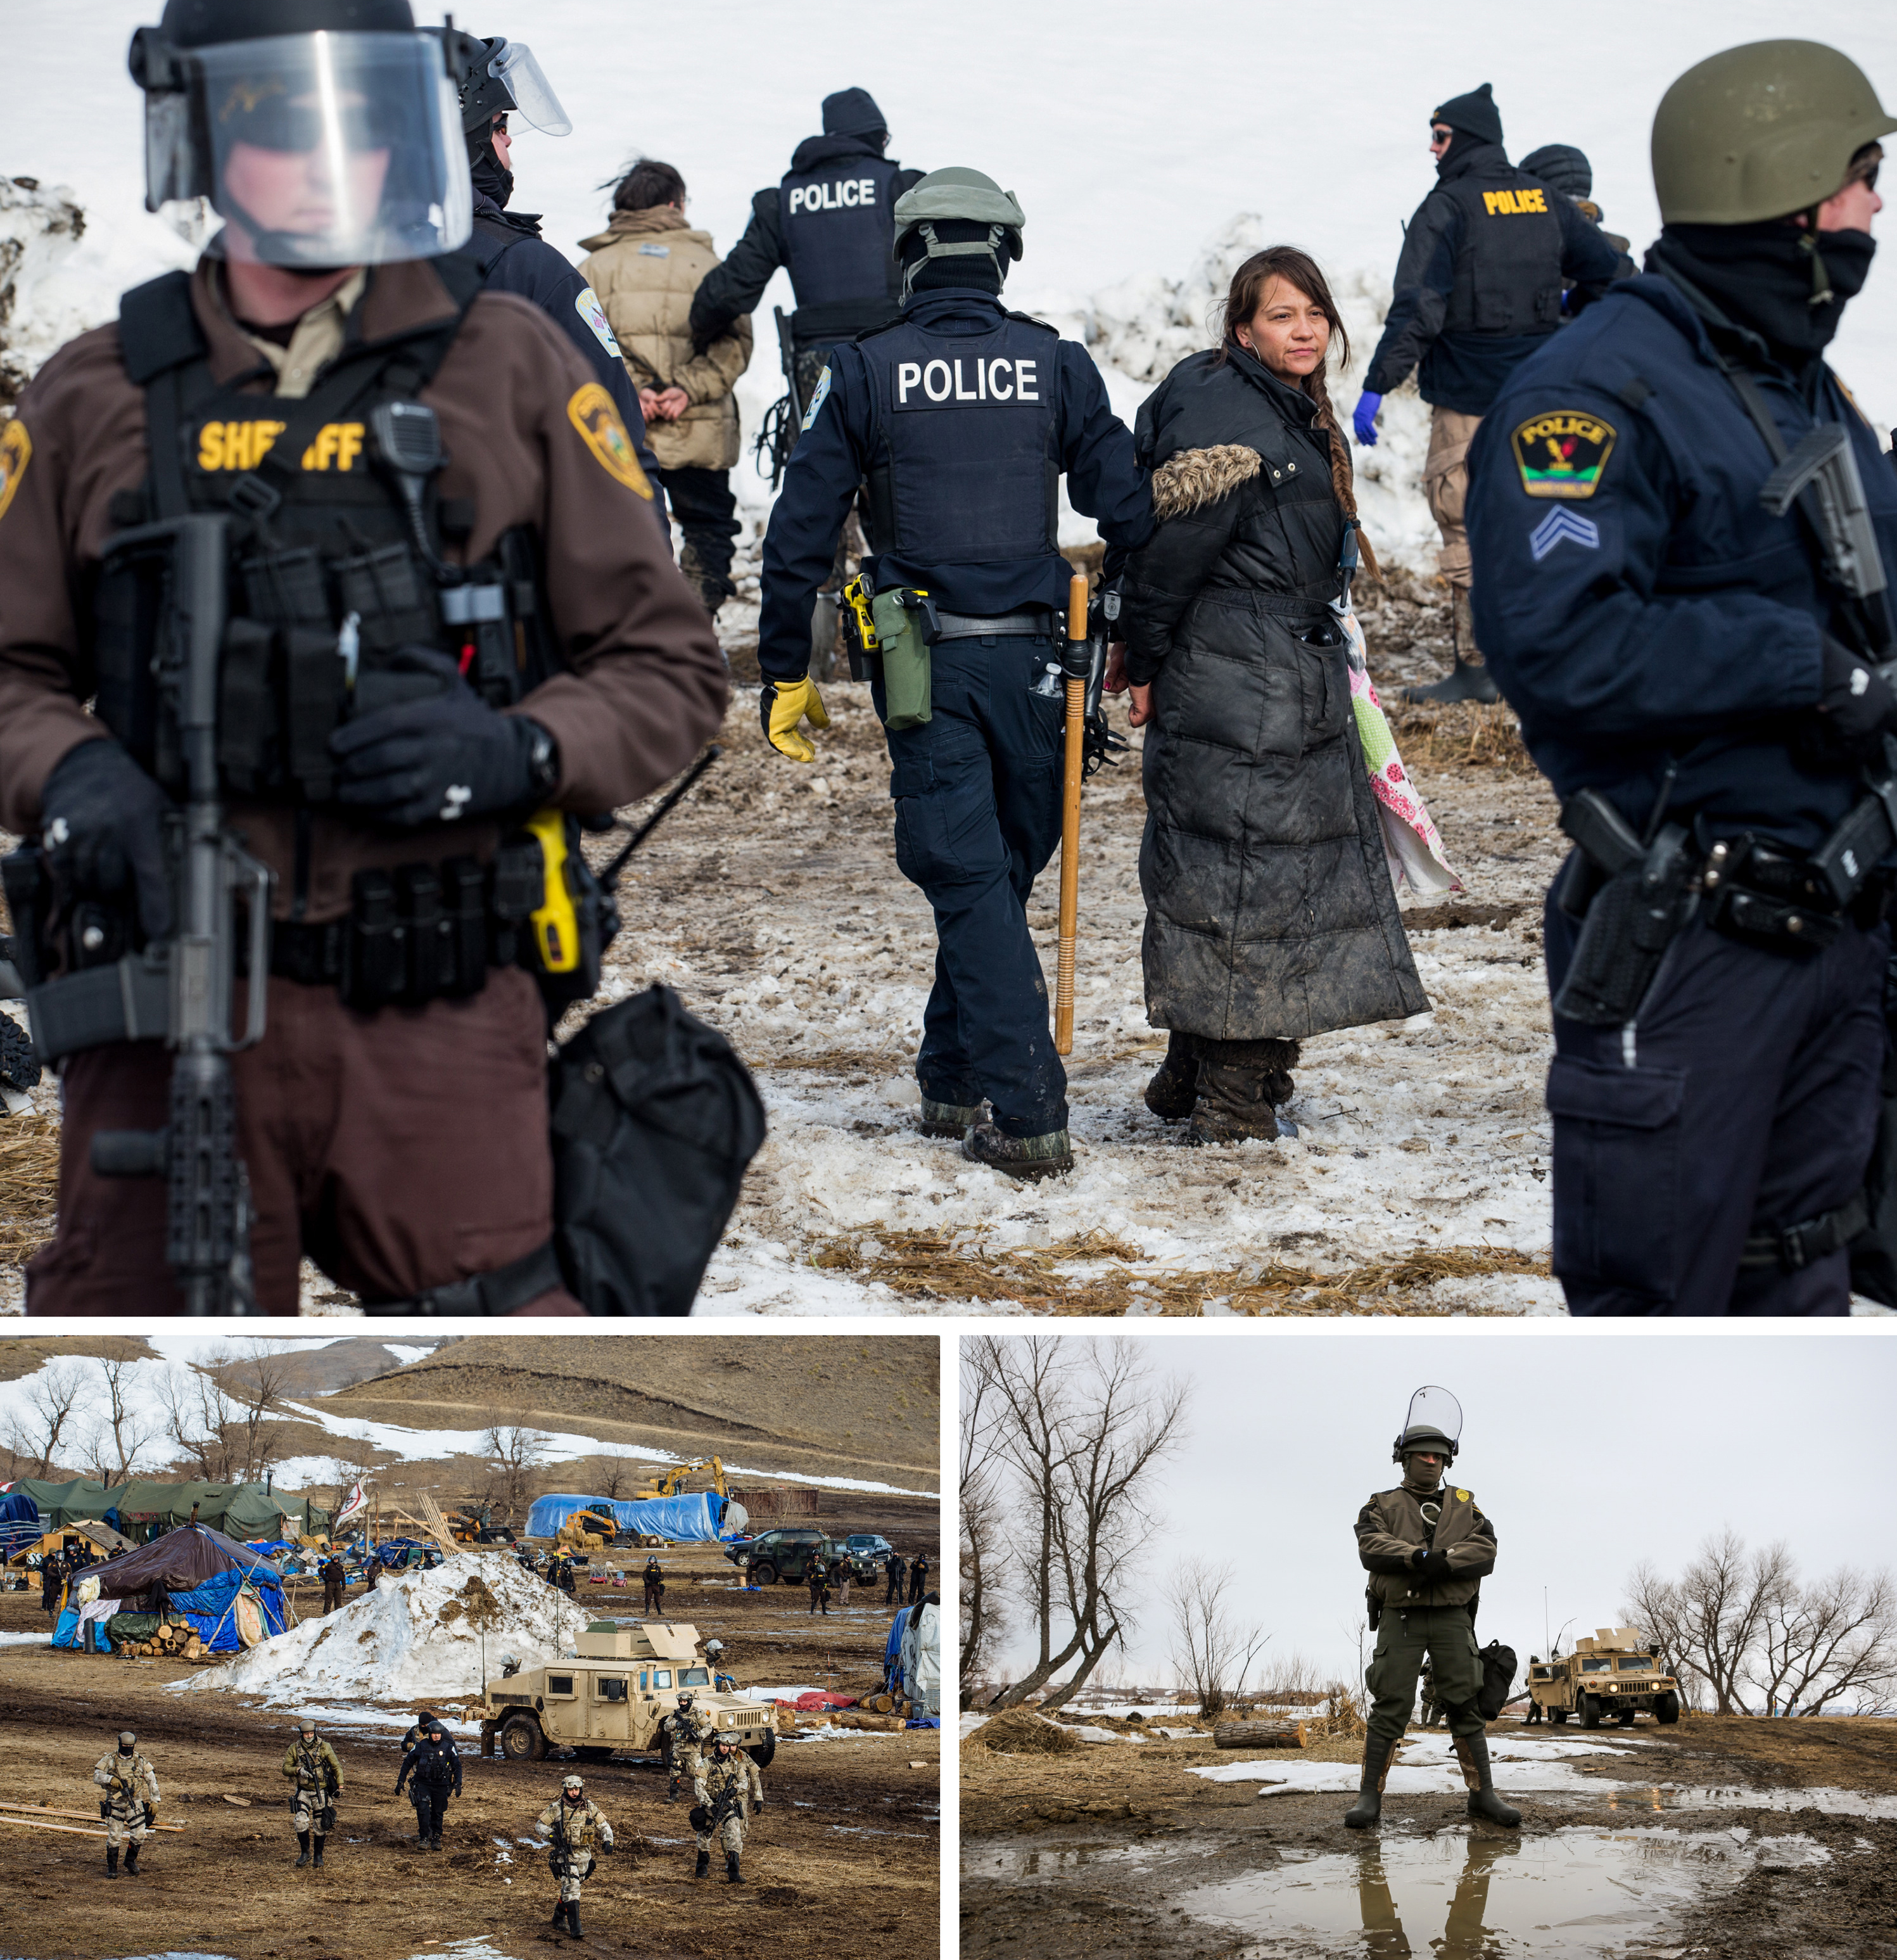 PHOTOS: The Final Hours Of A Dakota Access Pipeline Protest Camp